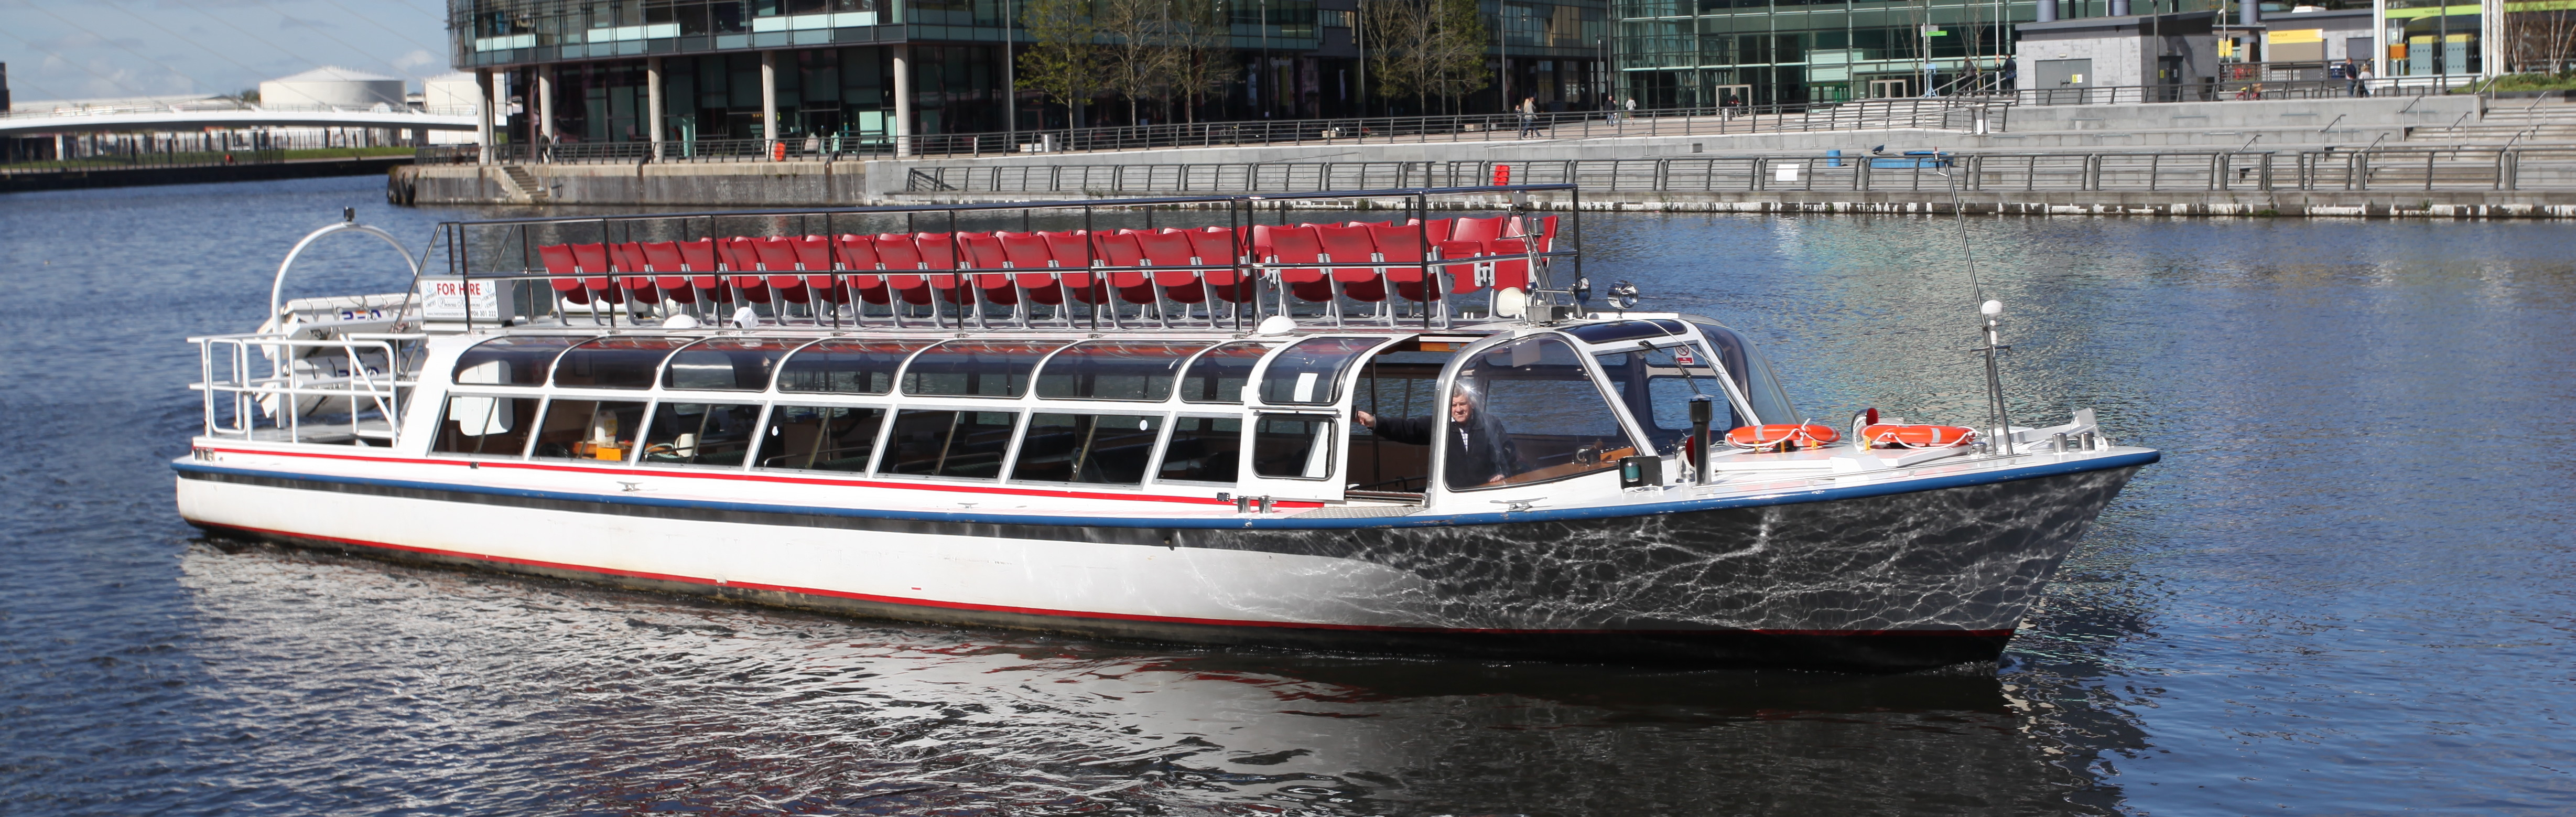 Party Boat Manchester